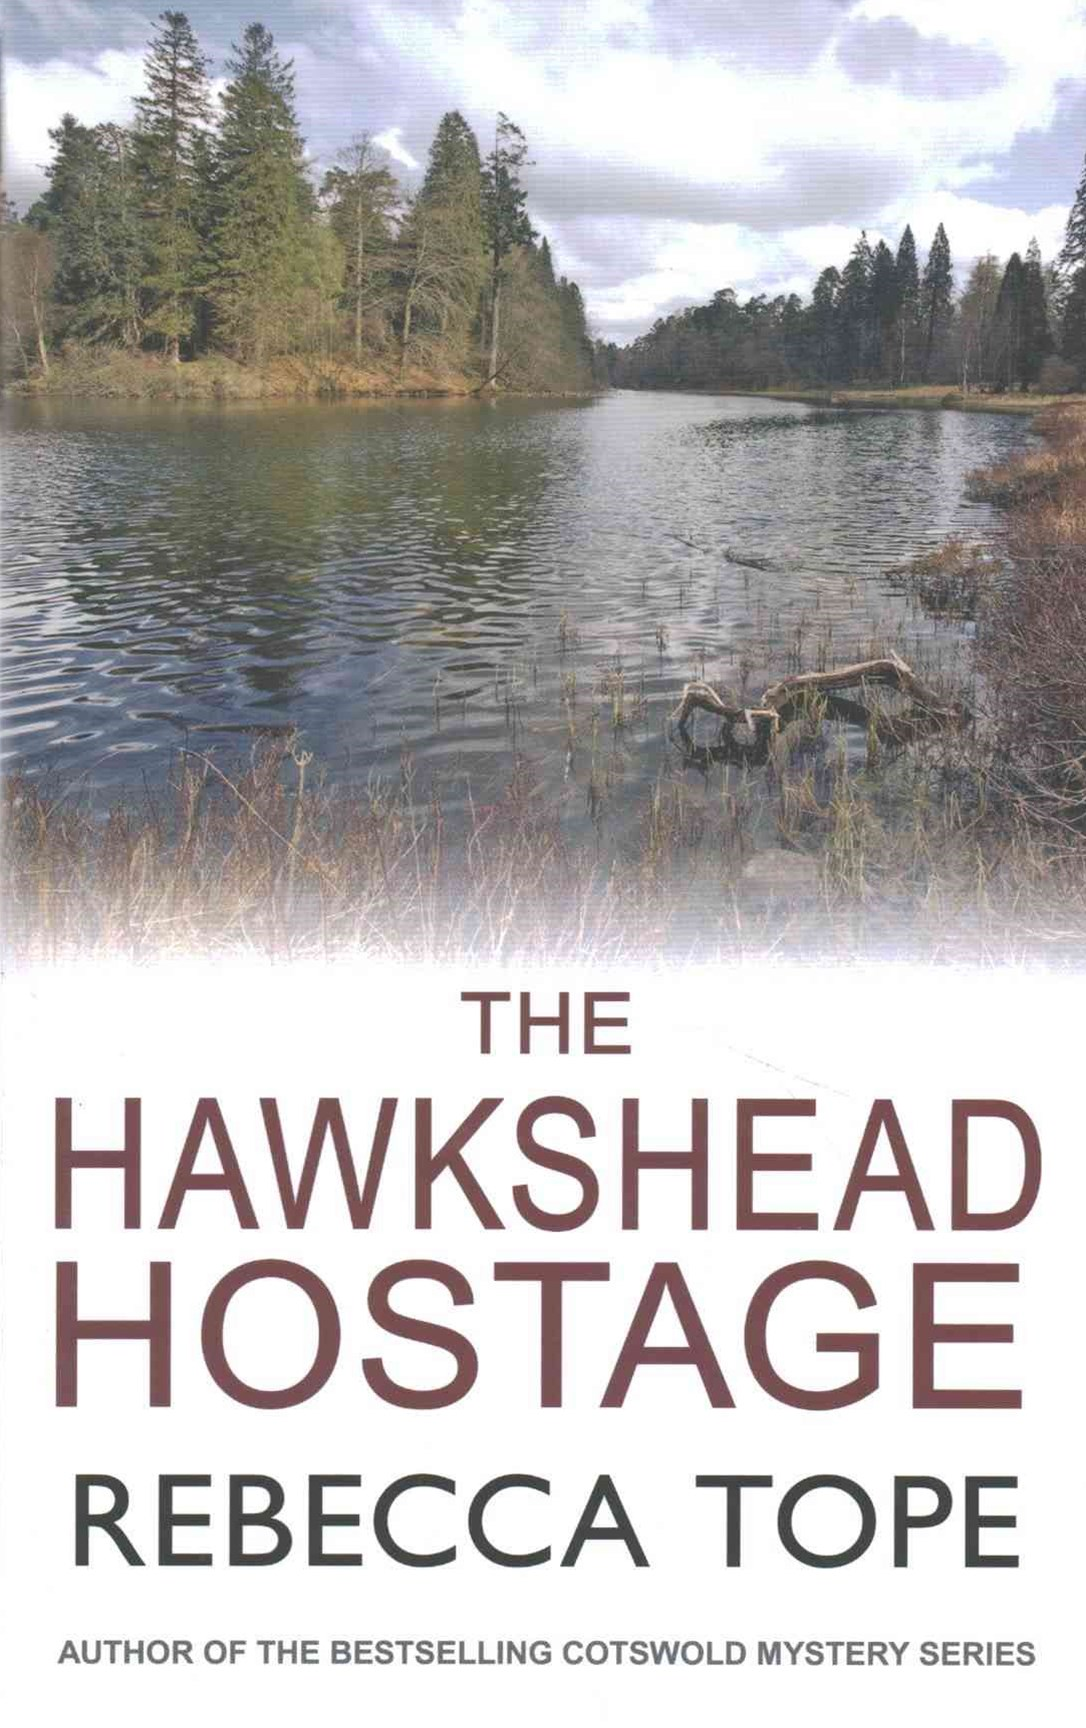 The Hawkshead Hostage